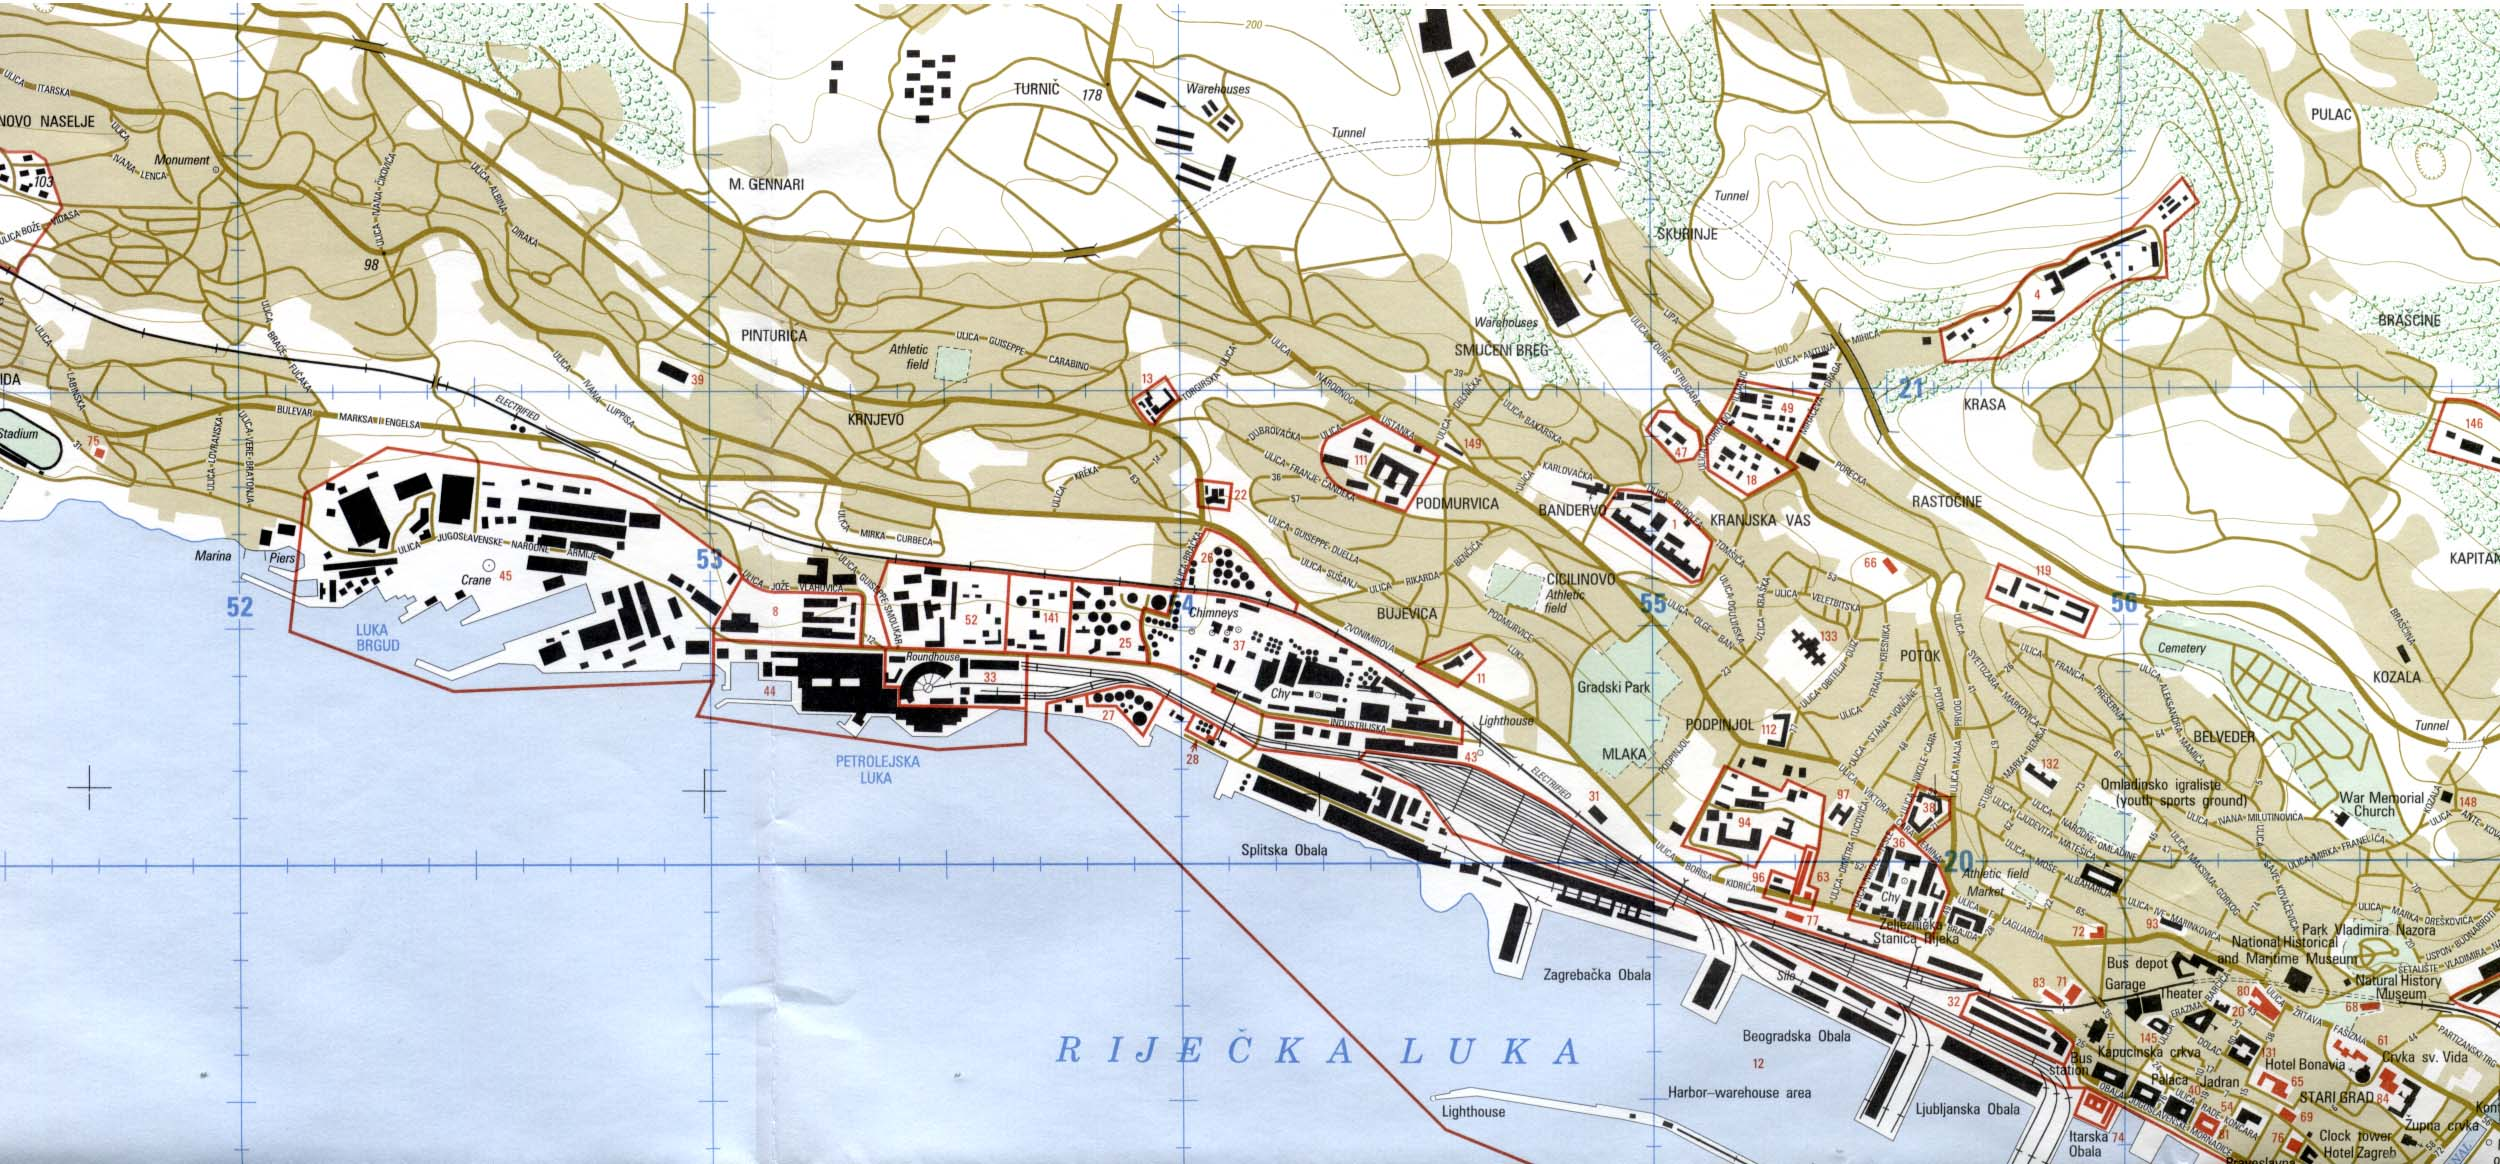 Rijeka City Map, Croatia